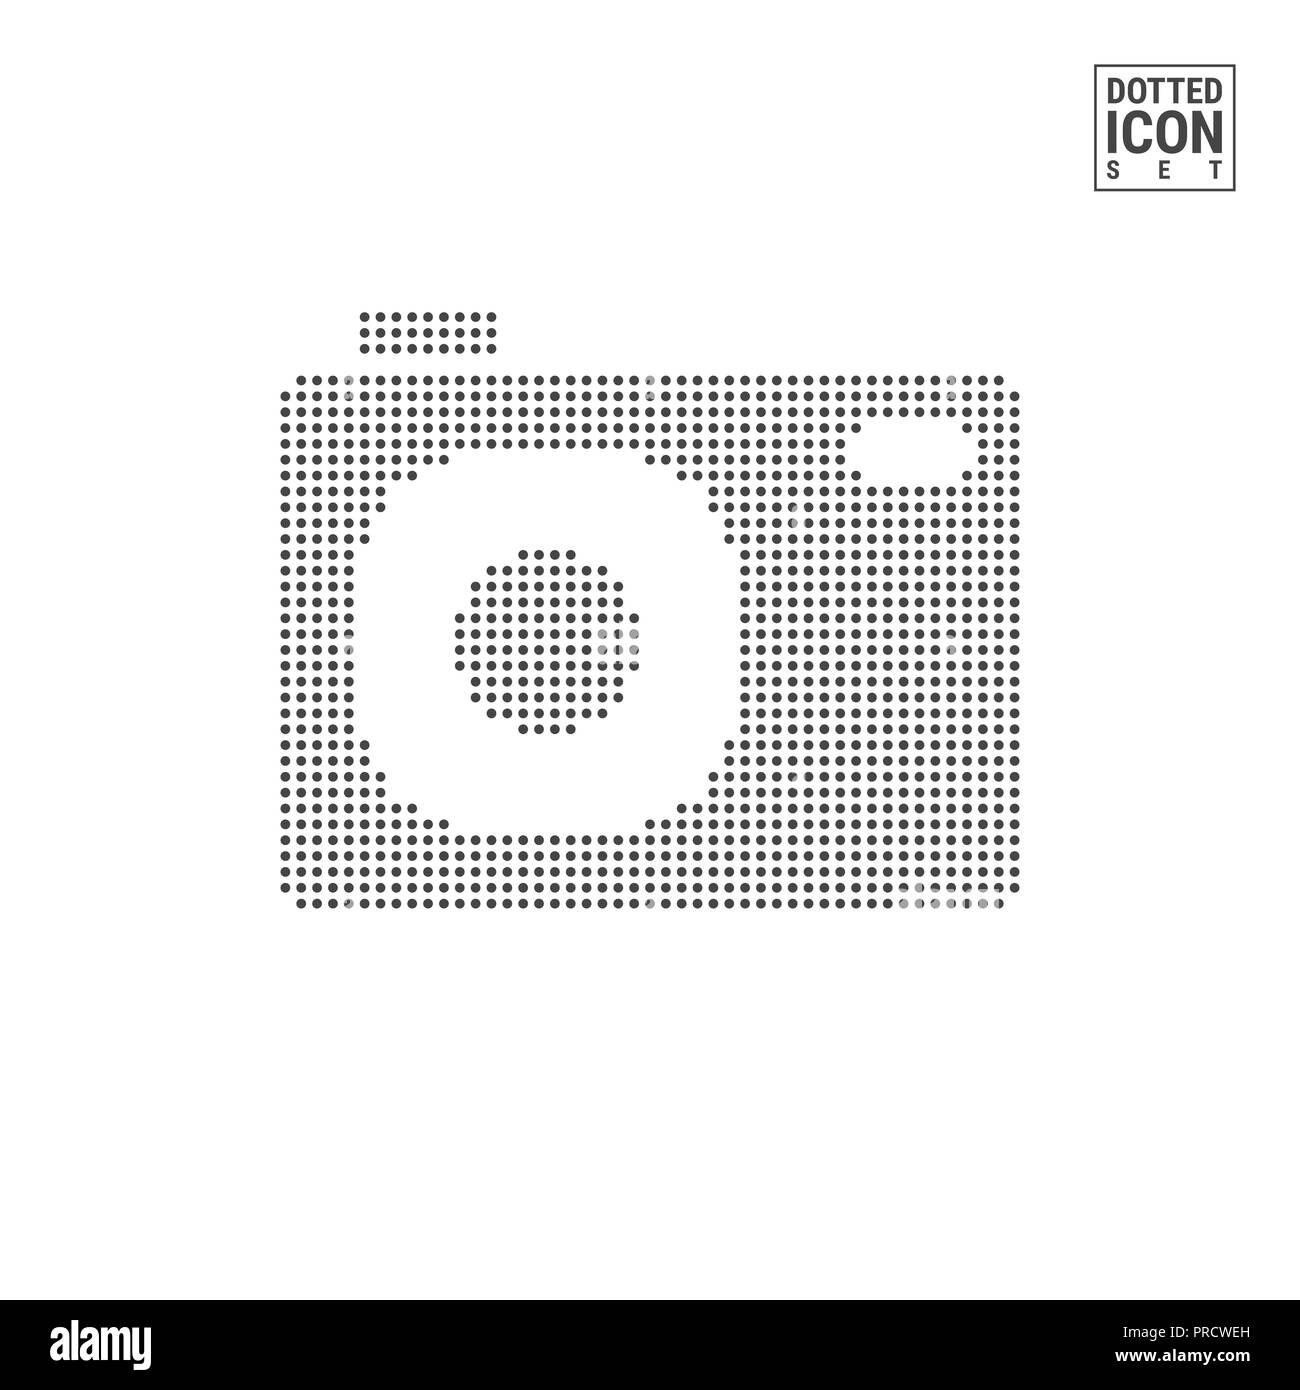 Photo Camera Dot Pattern Icon. Snapshot Dotted Icon Isolated on White Background. Illustration or Design Template. Can Be Used for Advertising, Web an - Stock Image